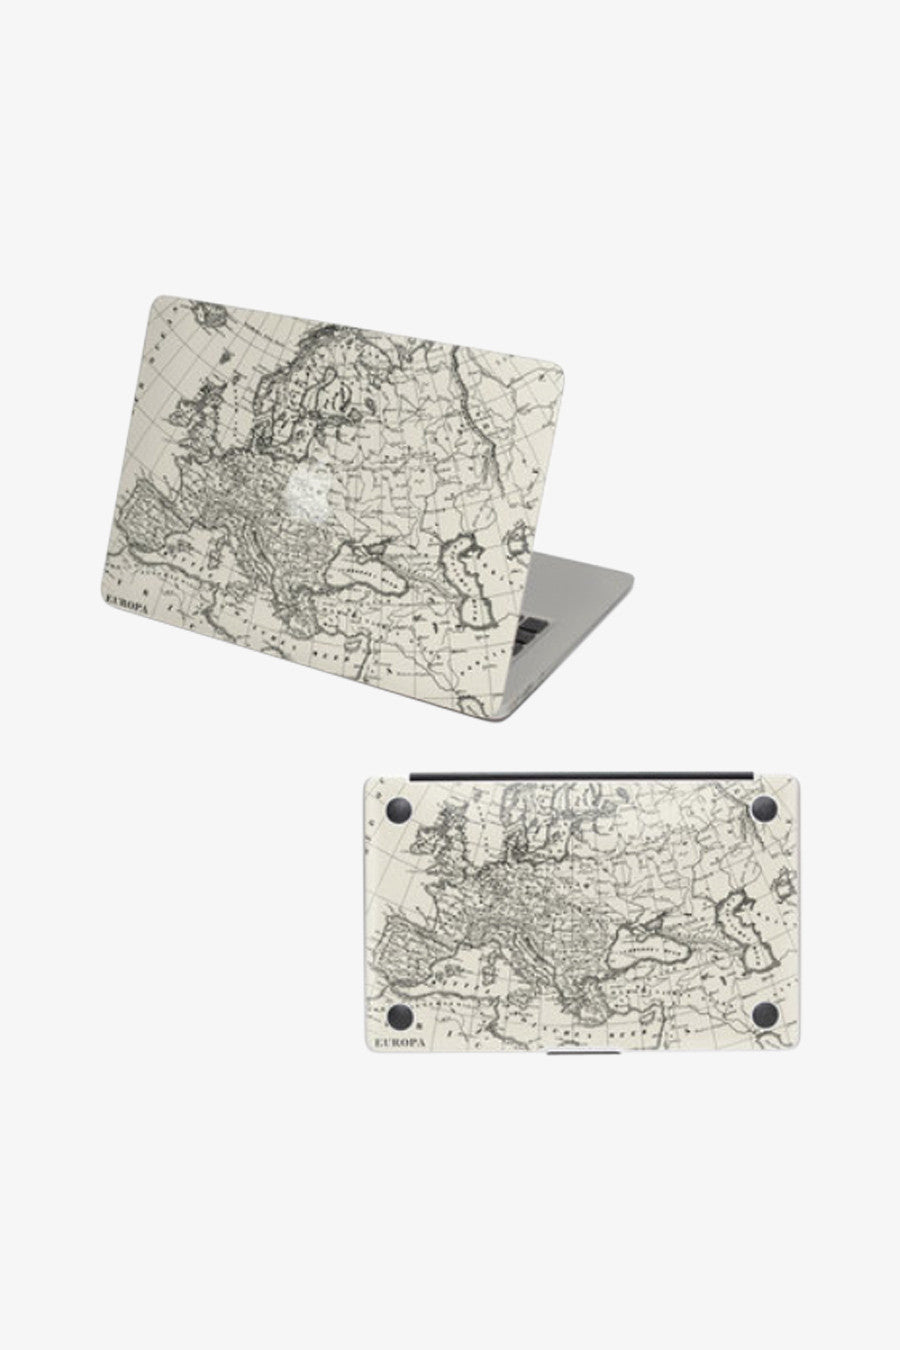 Macbook Vintage Europe Map Decal Sticker. Art Decals By Moooh!!